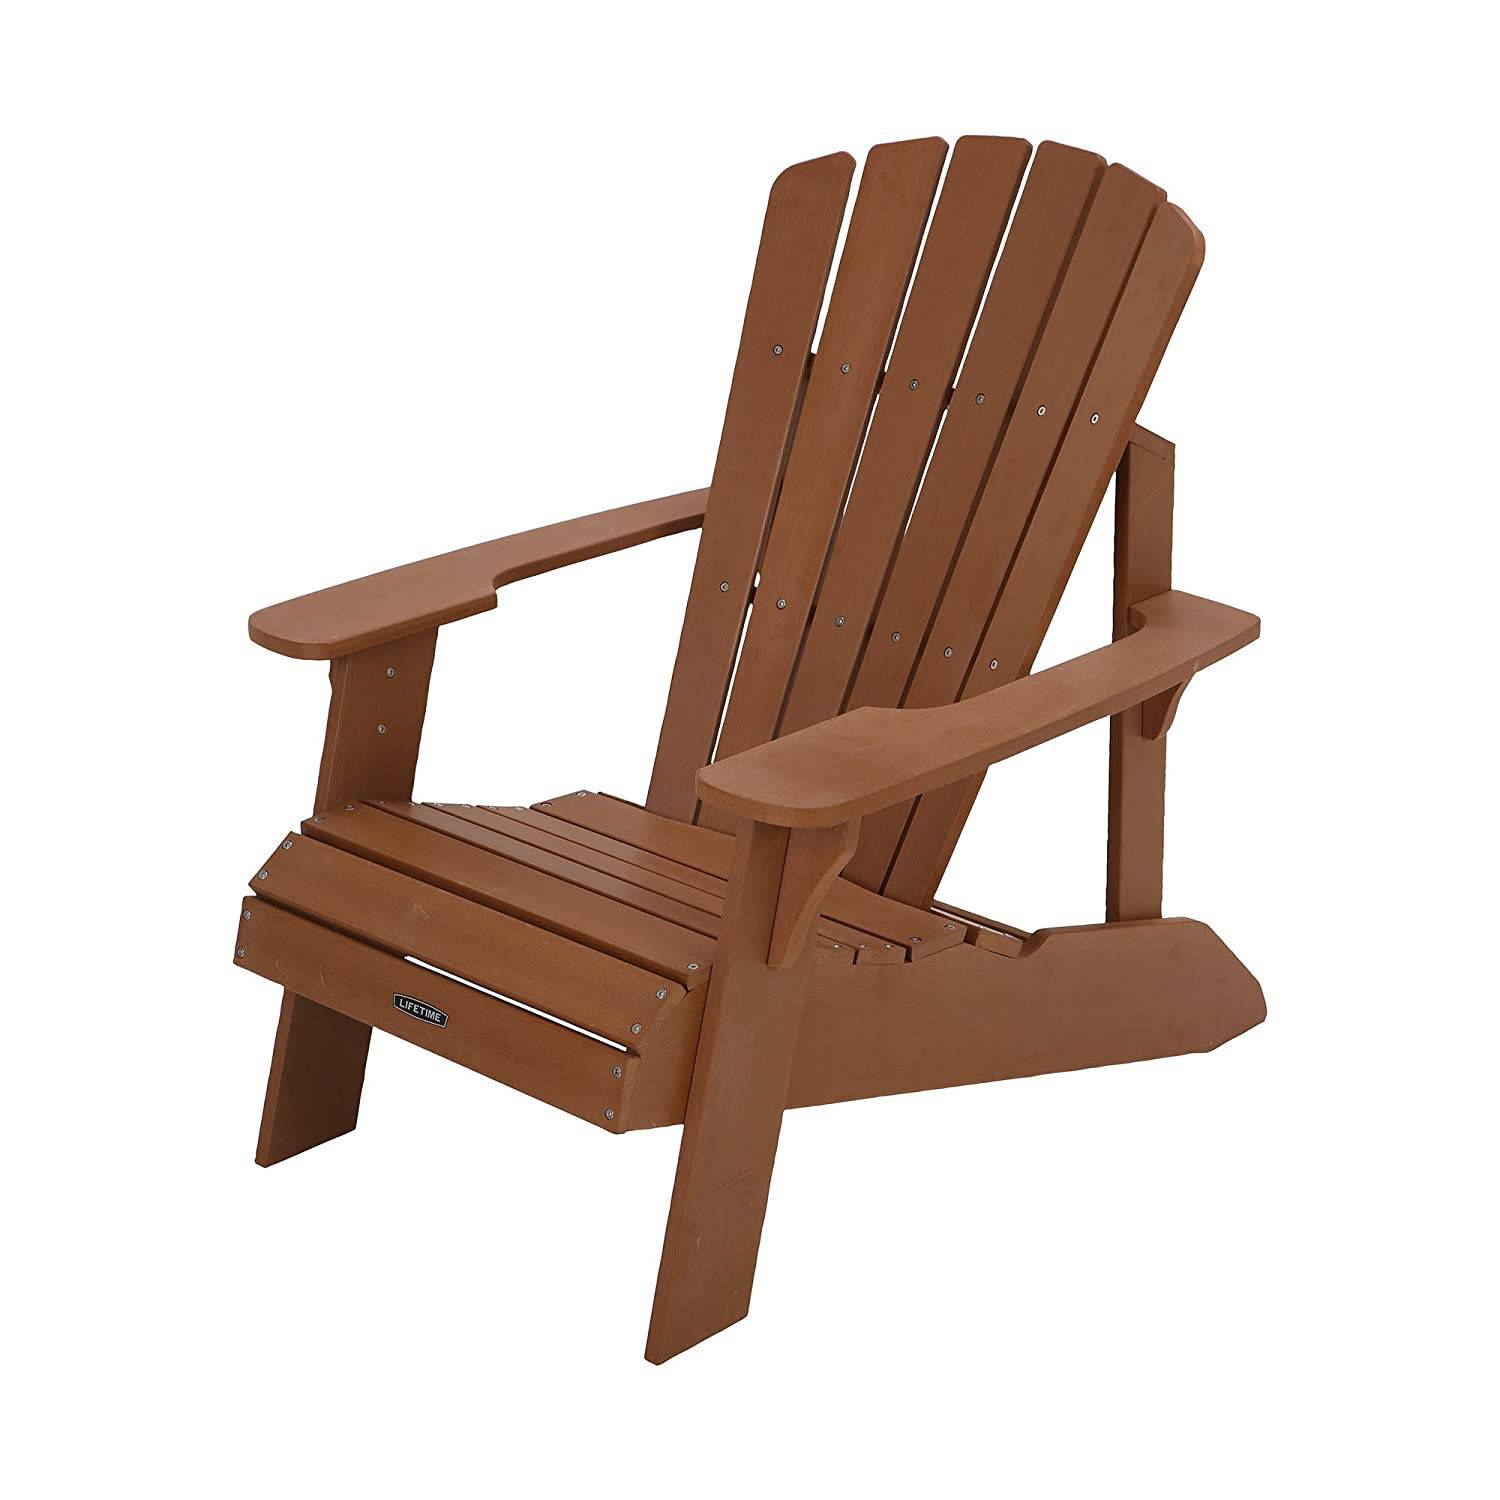 The Best Adirondack Chairs 1